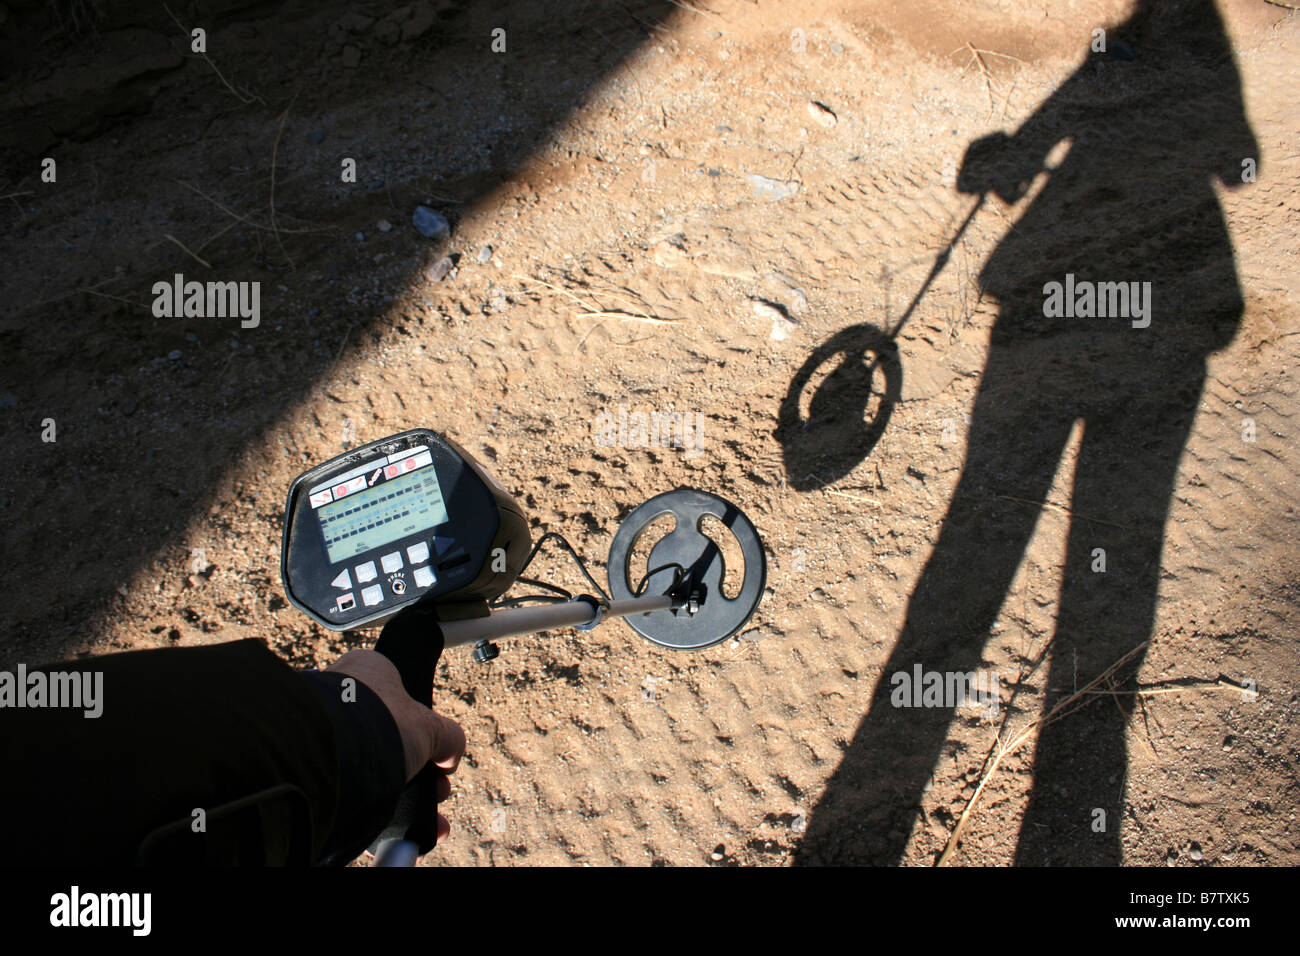 a person using a metal detector to look for coins - Stock Image